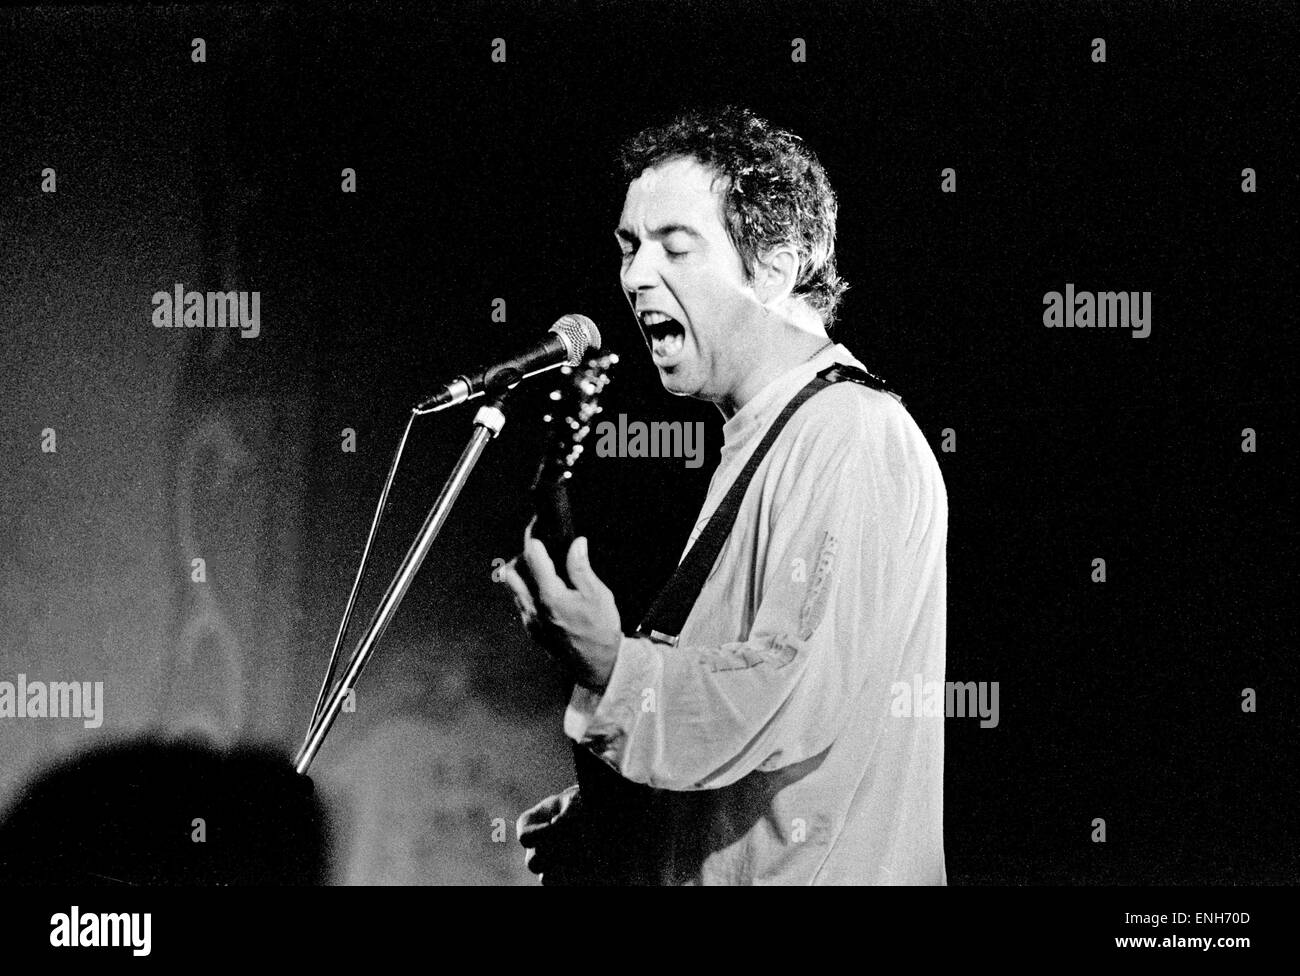 Pete Shelly of The Buzzcocks performing in the 1990's. - Stock Image